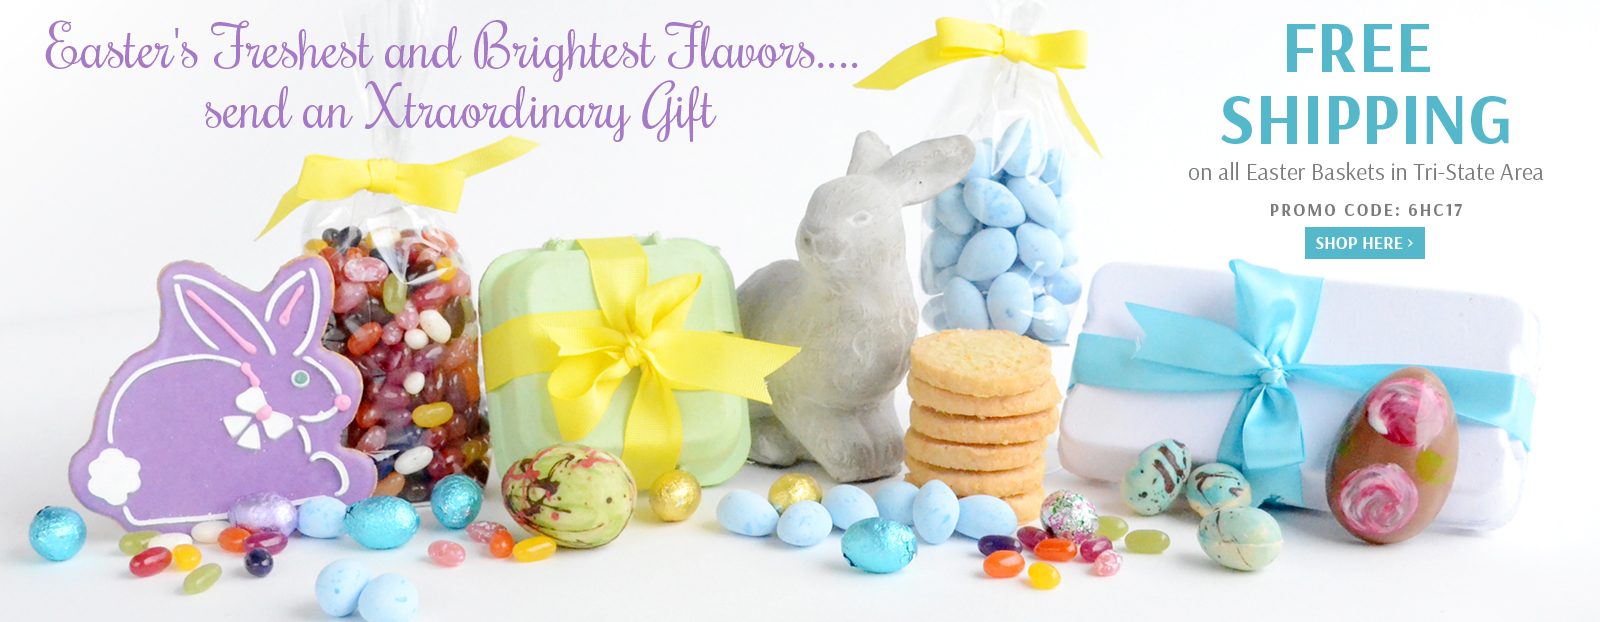 Free Shipping on all Easter Baskets in Tri-State Area